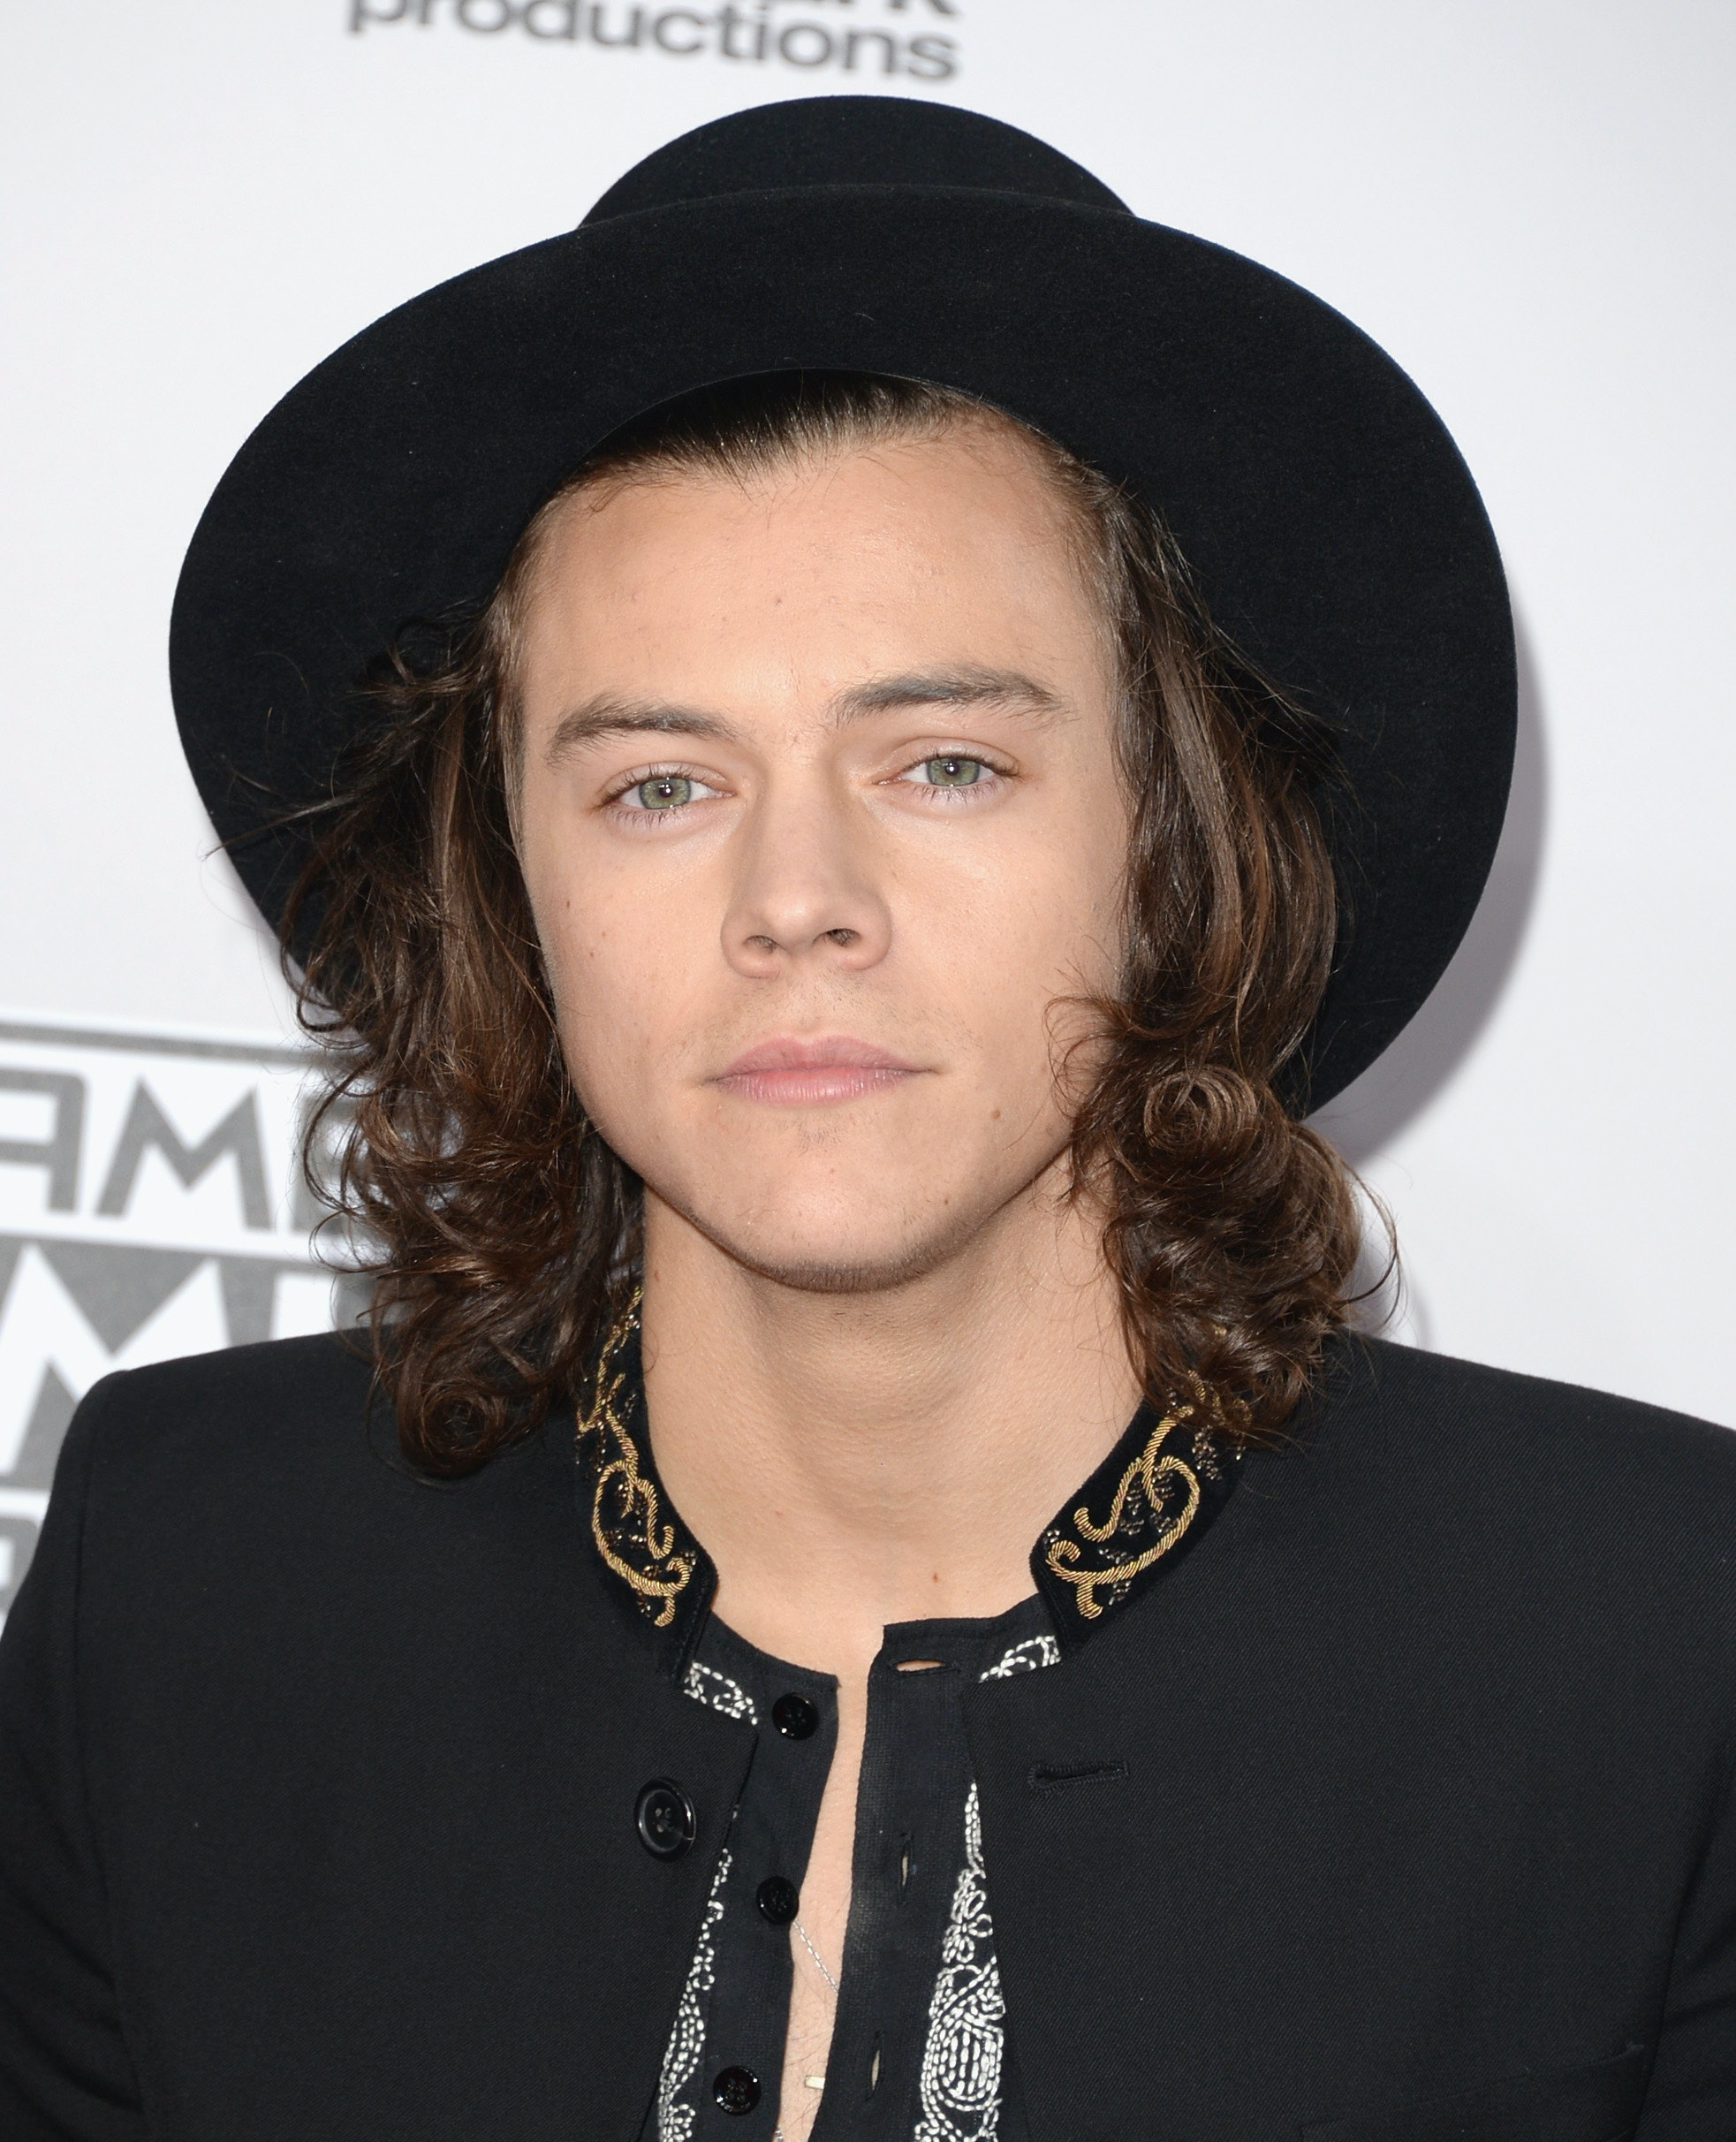 Image result for Harry styles fedora